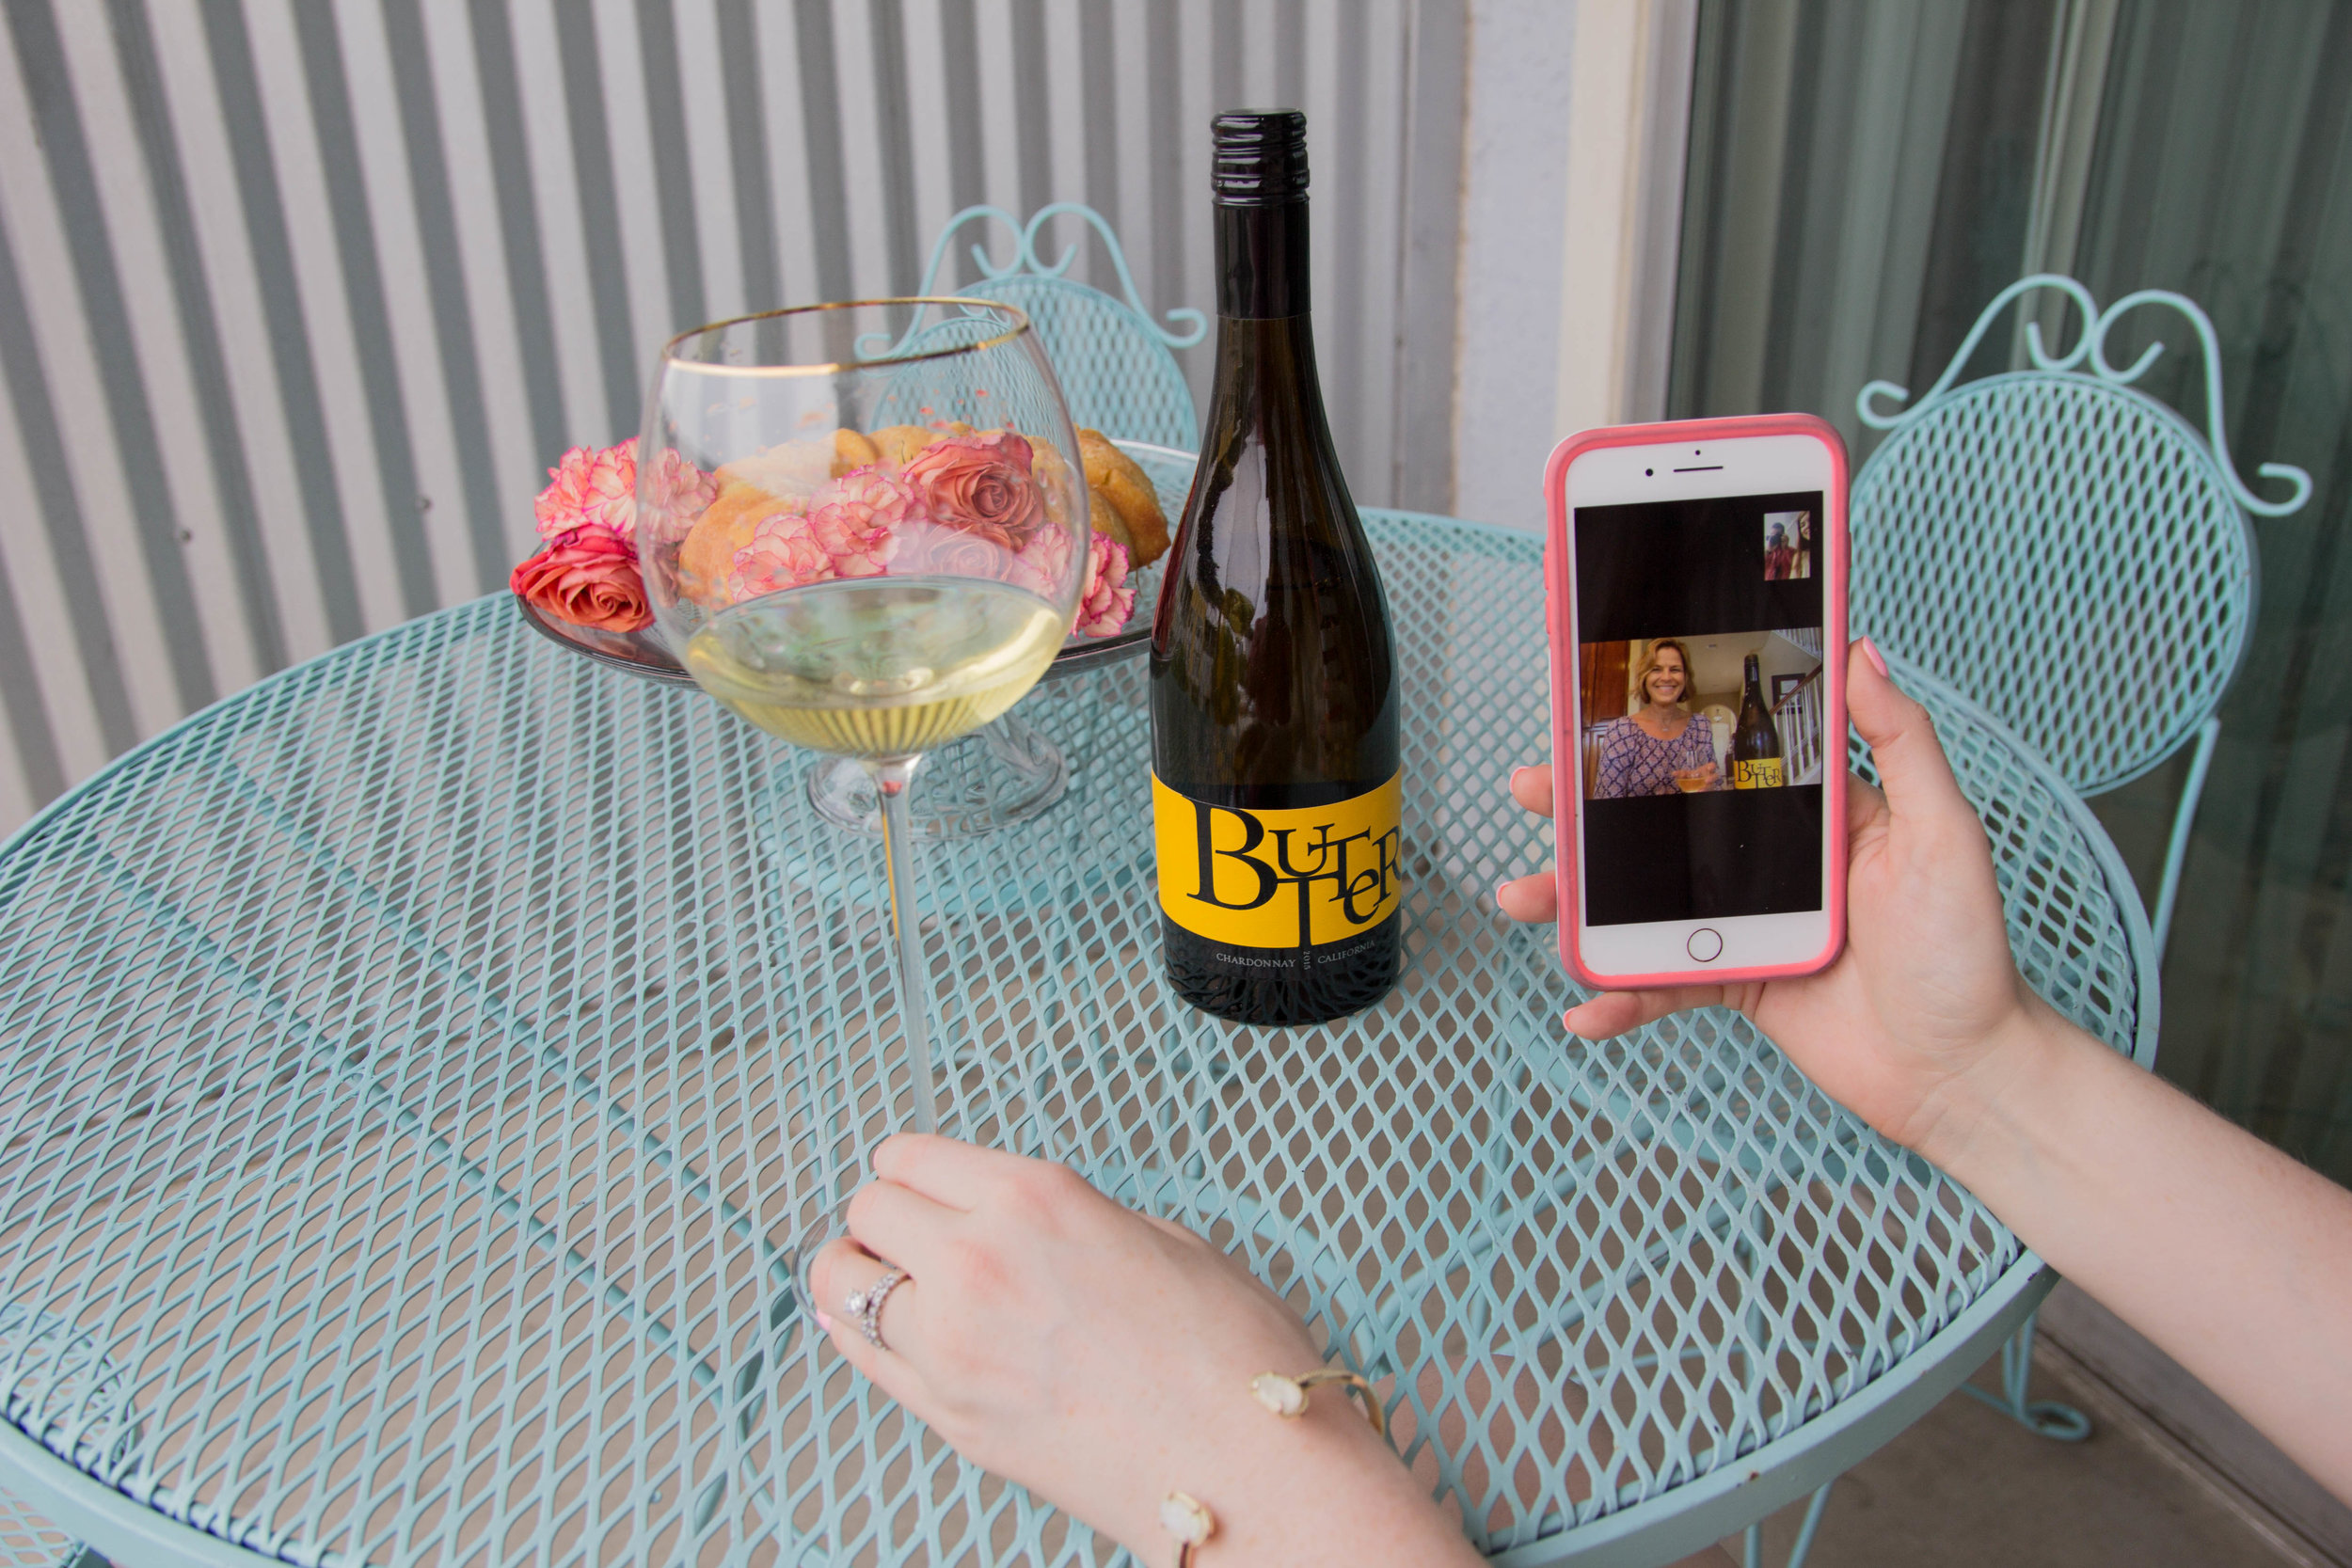 JaM Cellars Butter Chardonnay,  kendra scott elton bracelet, Napa Wine, mother's day, cheers to mother in laws, bed bath and beyond tall wine glasses, lemon pound cake, the perfect mother in law gift, otterbox